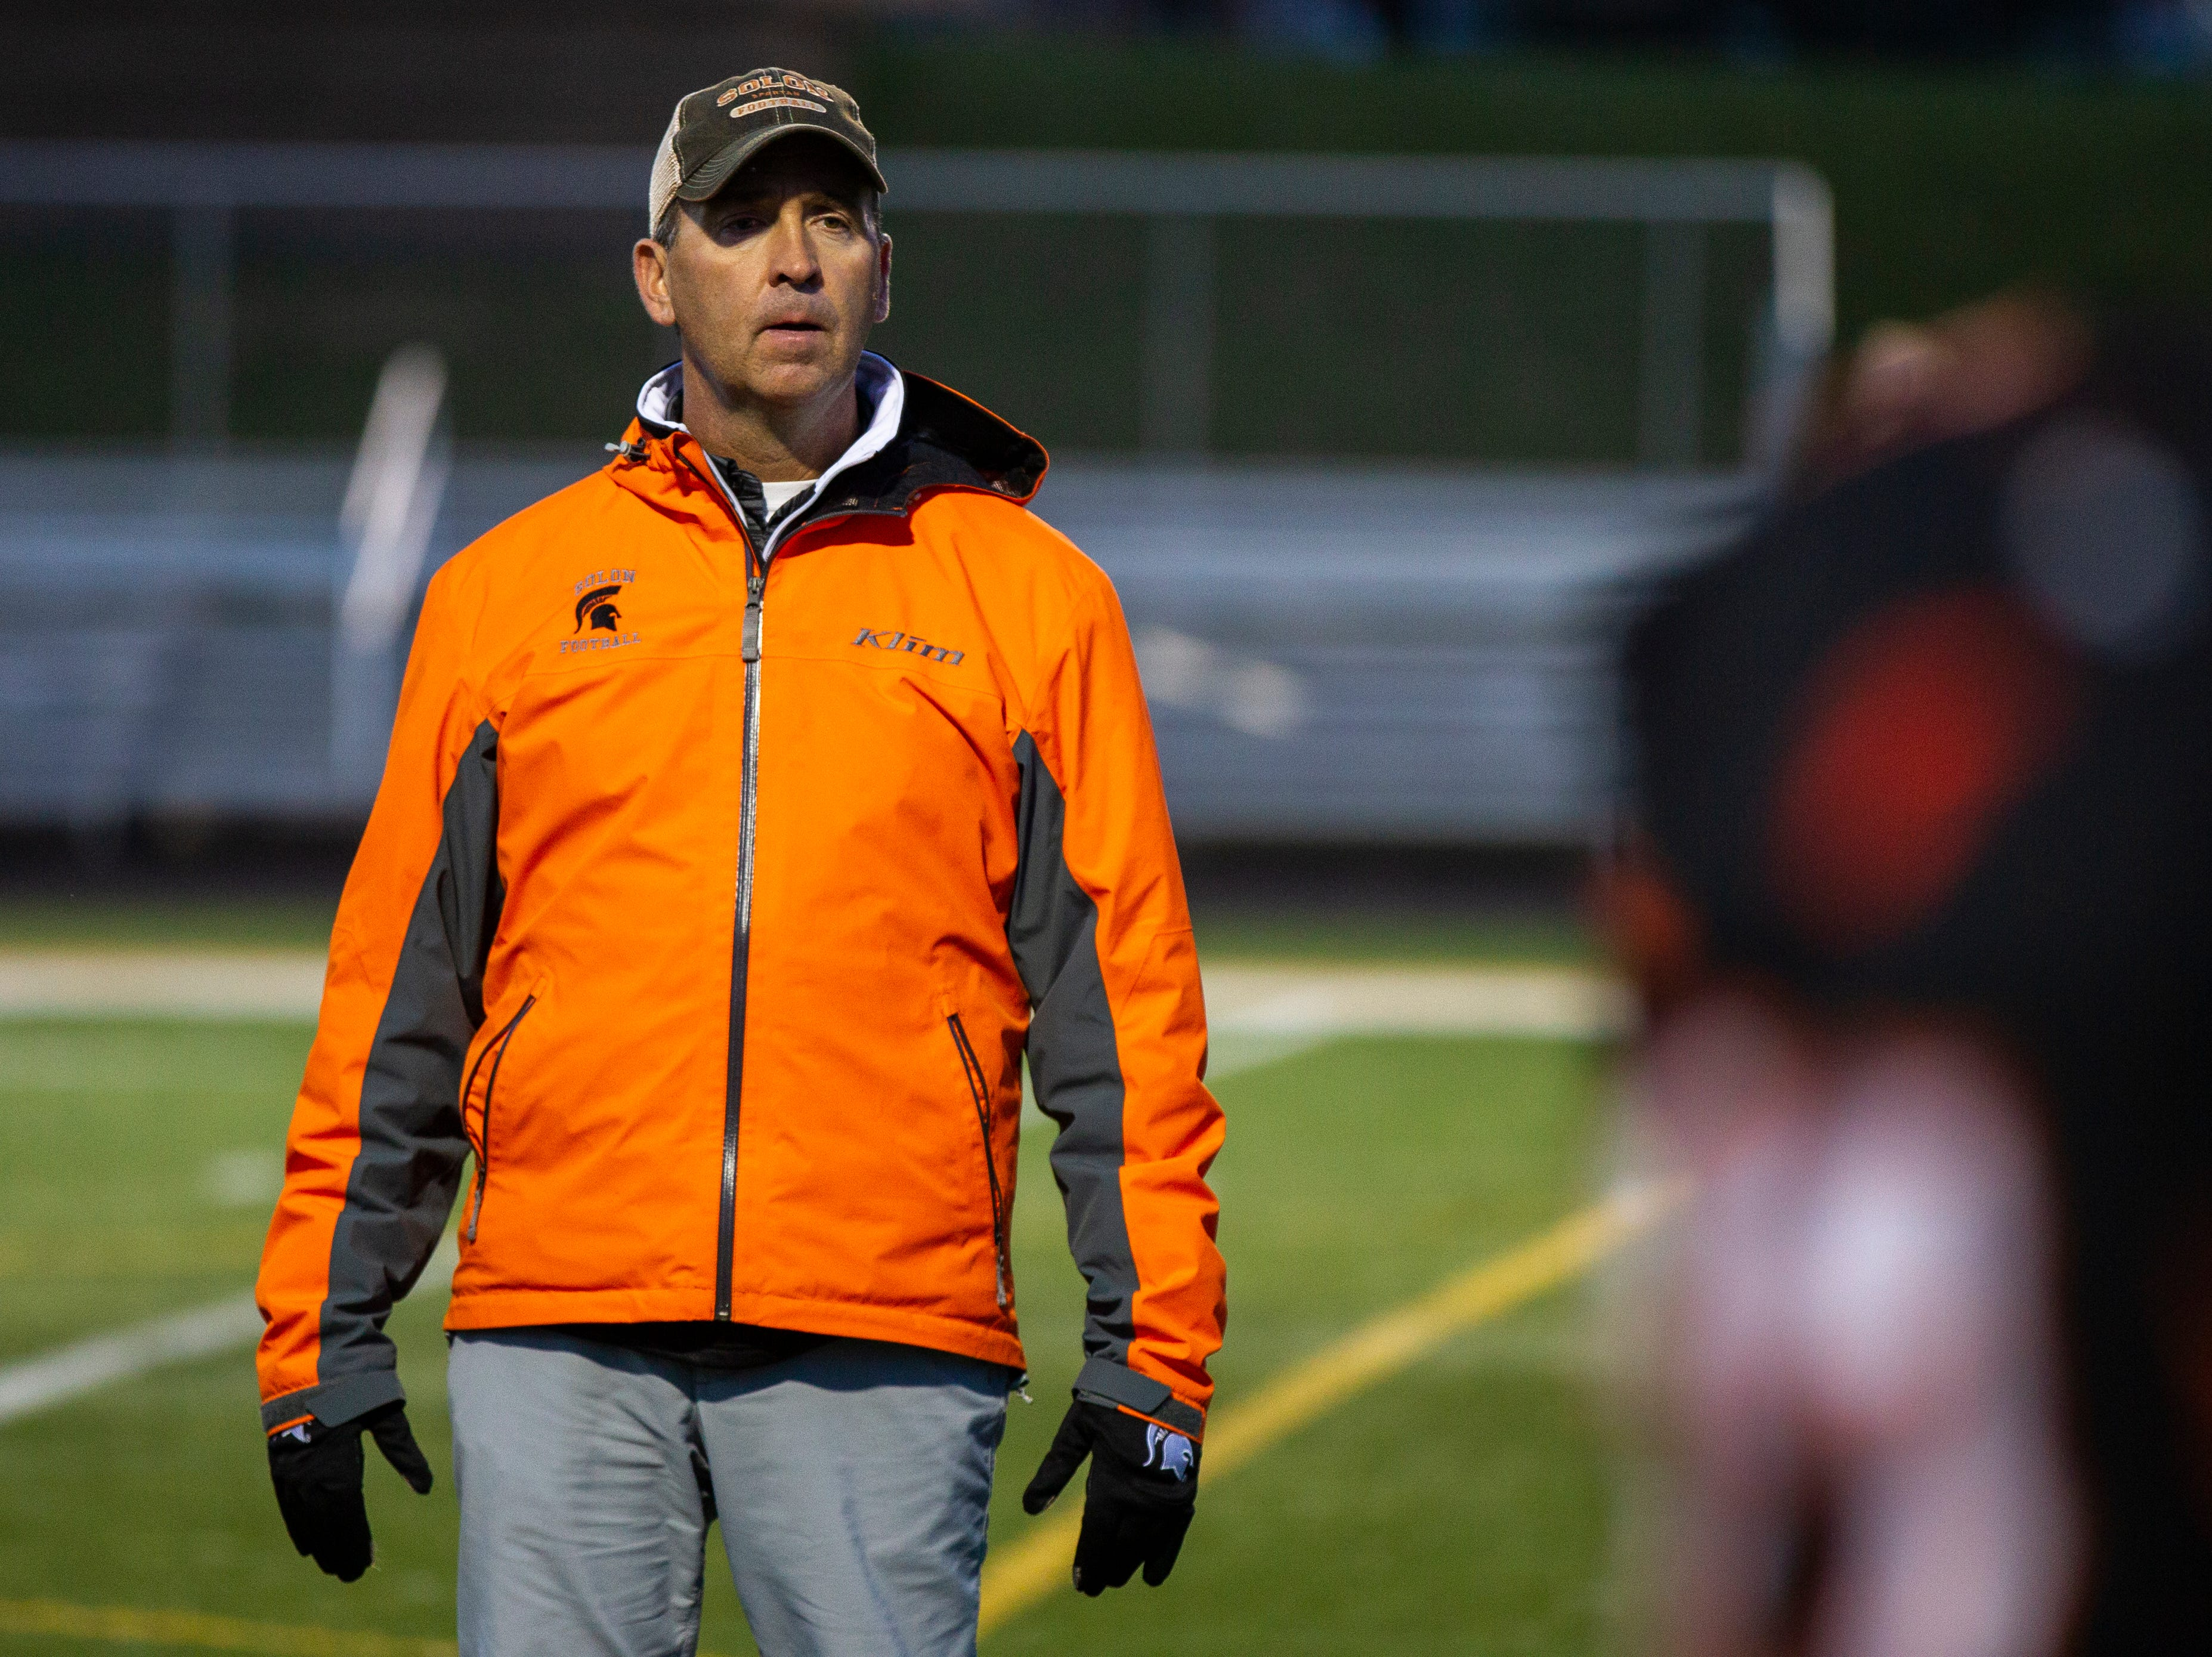 Solon football head coach Kevin Miller calls out to players before a Class 3A varsity first round playoff football game on Friday, Oct. 26, 2018, at Spartan Stadium in Solon, Iowa.